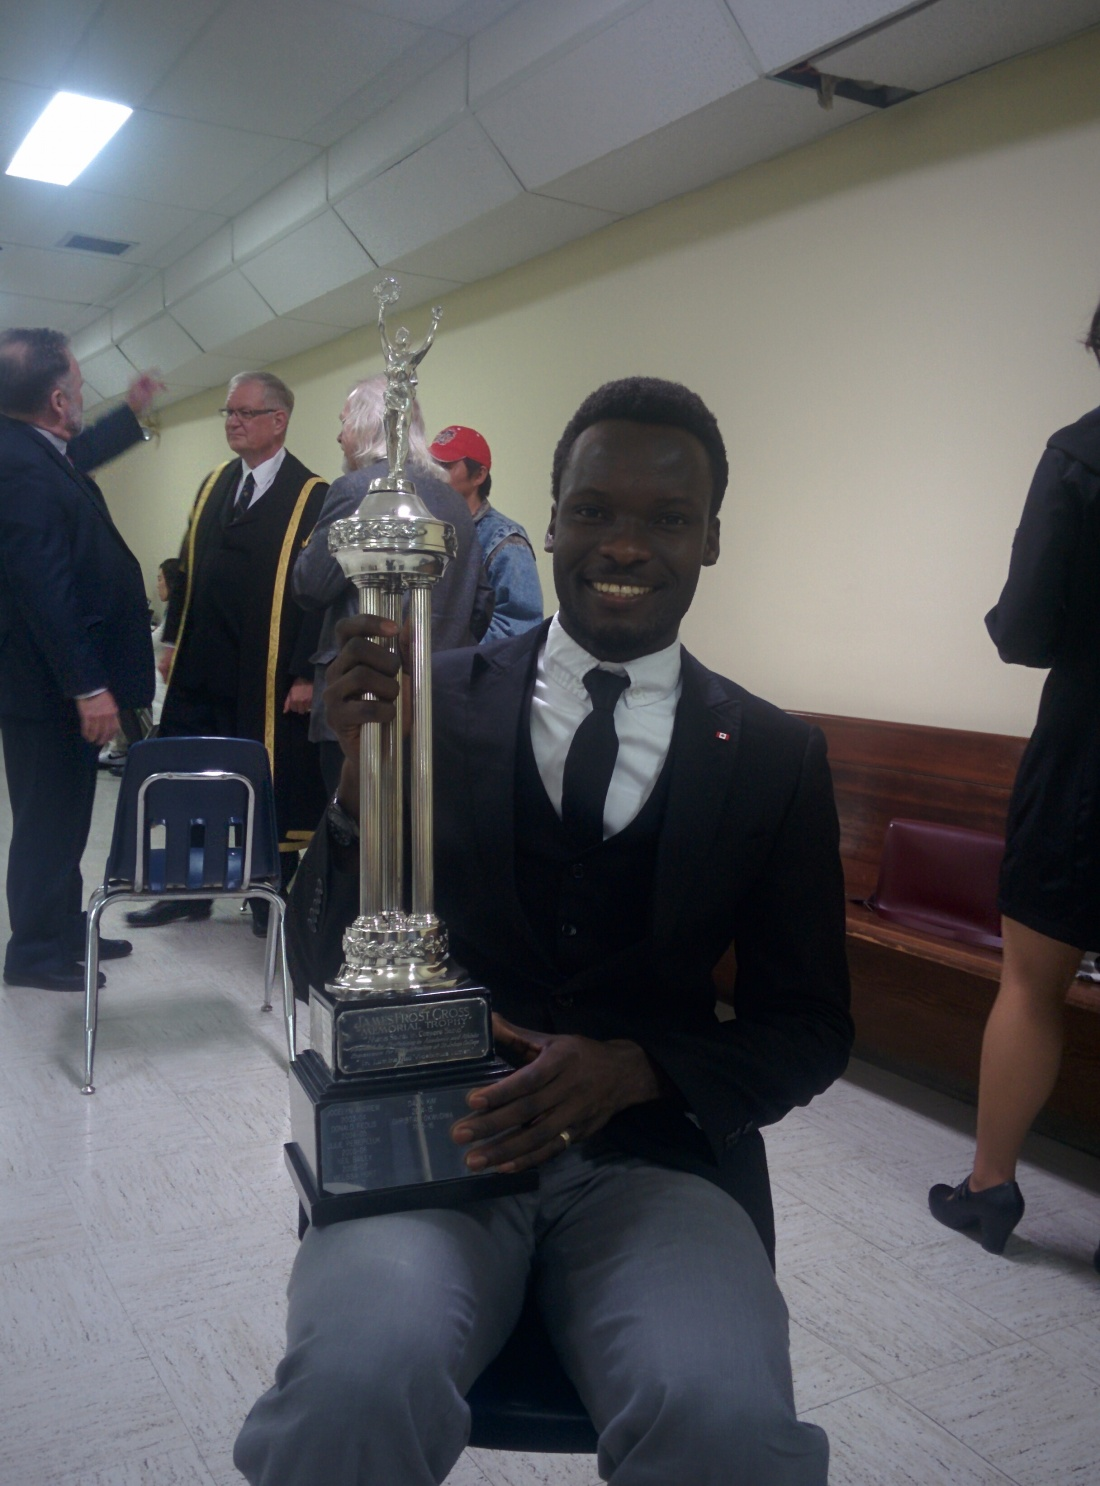 CHRISTIAN WITH THE TROPHY